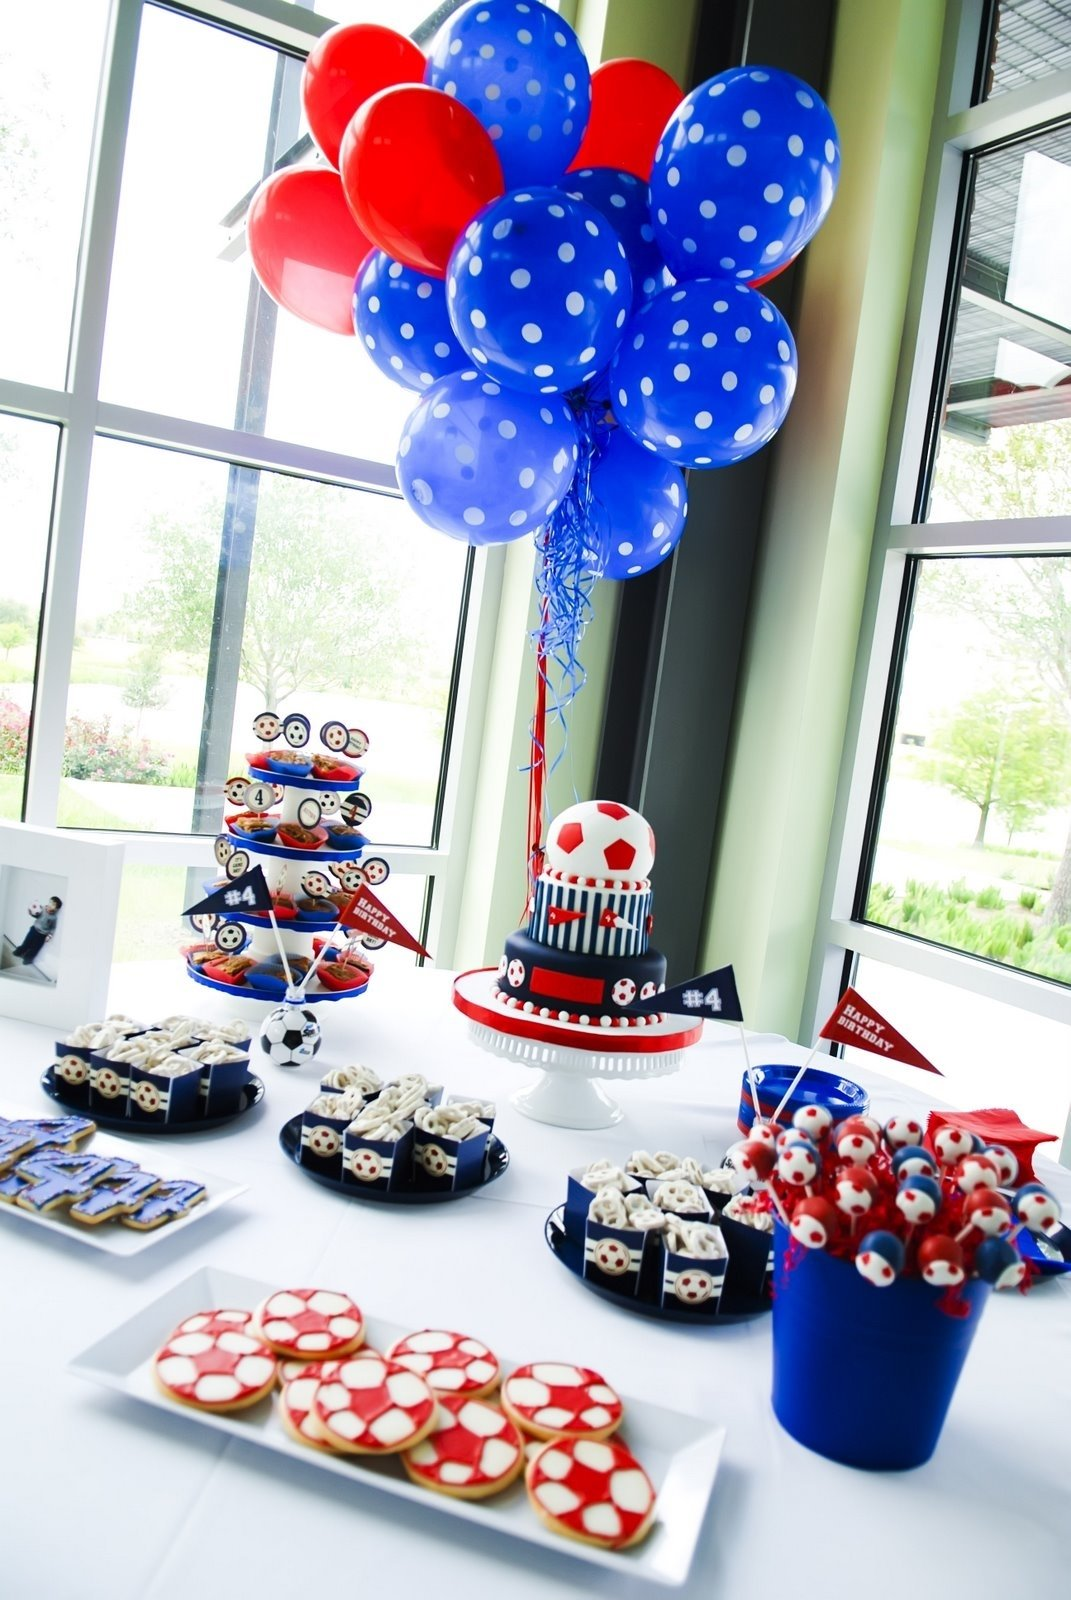 10 Pretty Ideas For A 13Th Birthday Party 50 awesome boys birthday party ideas i heart naptime 63 2021